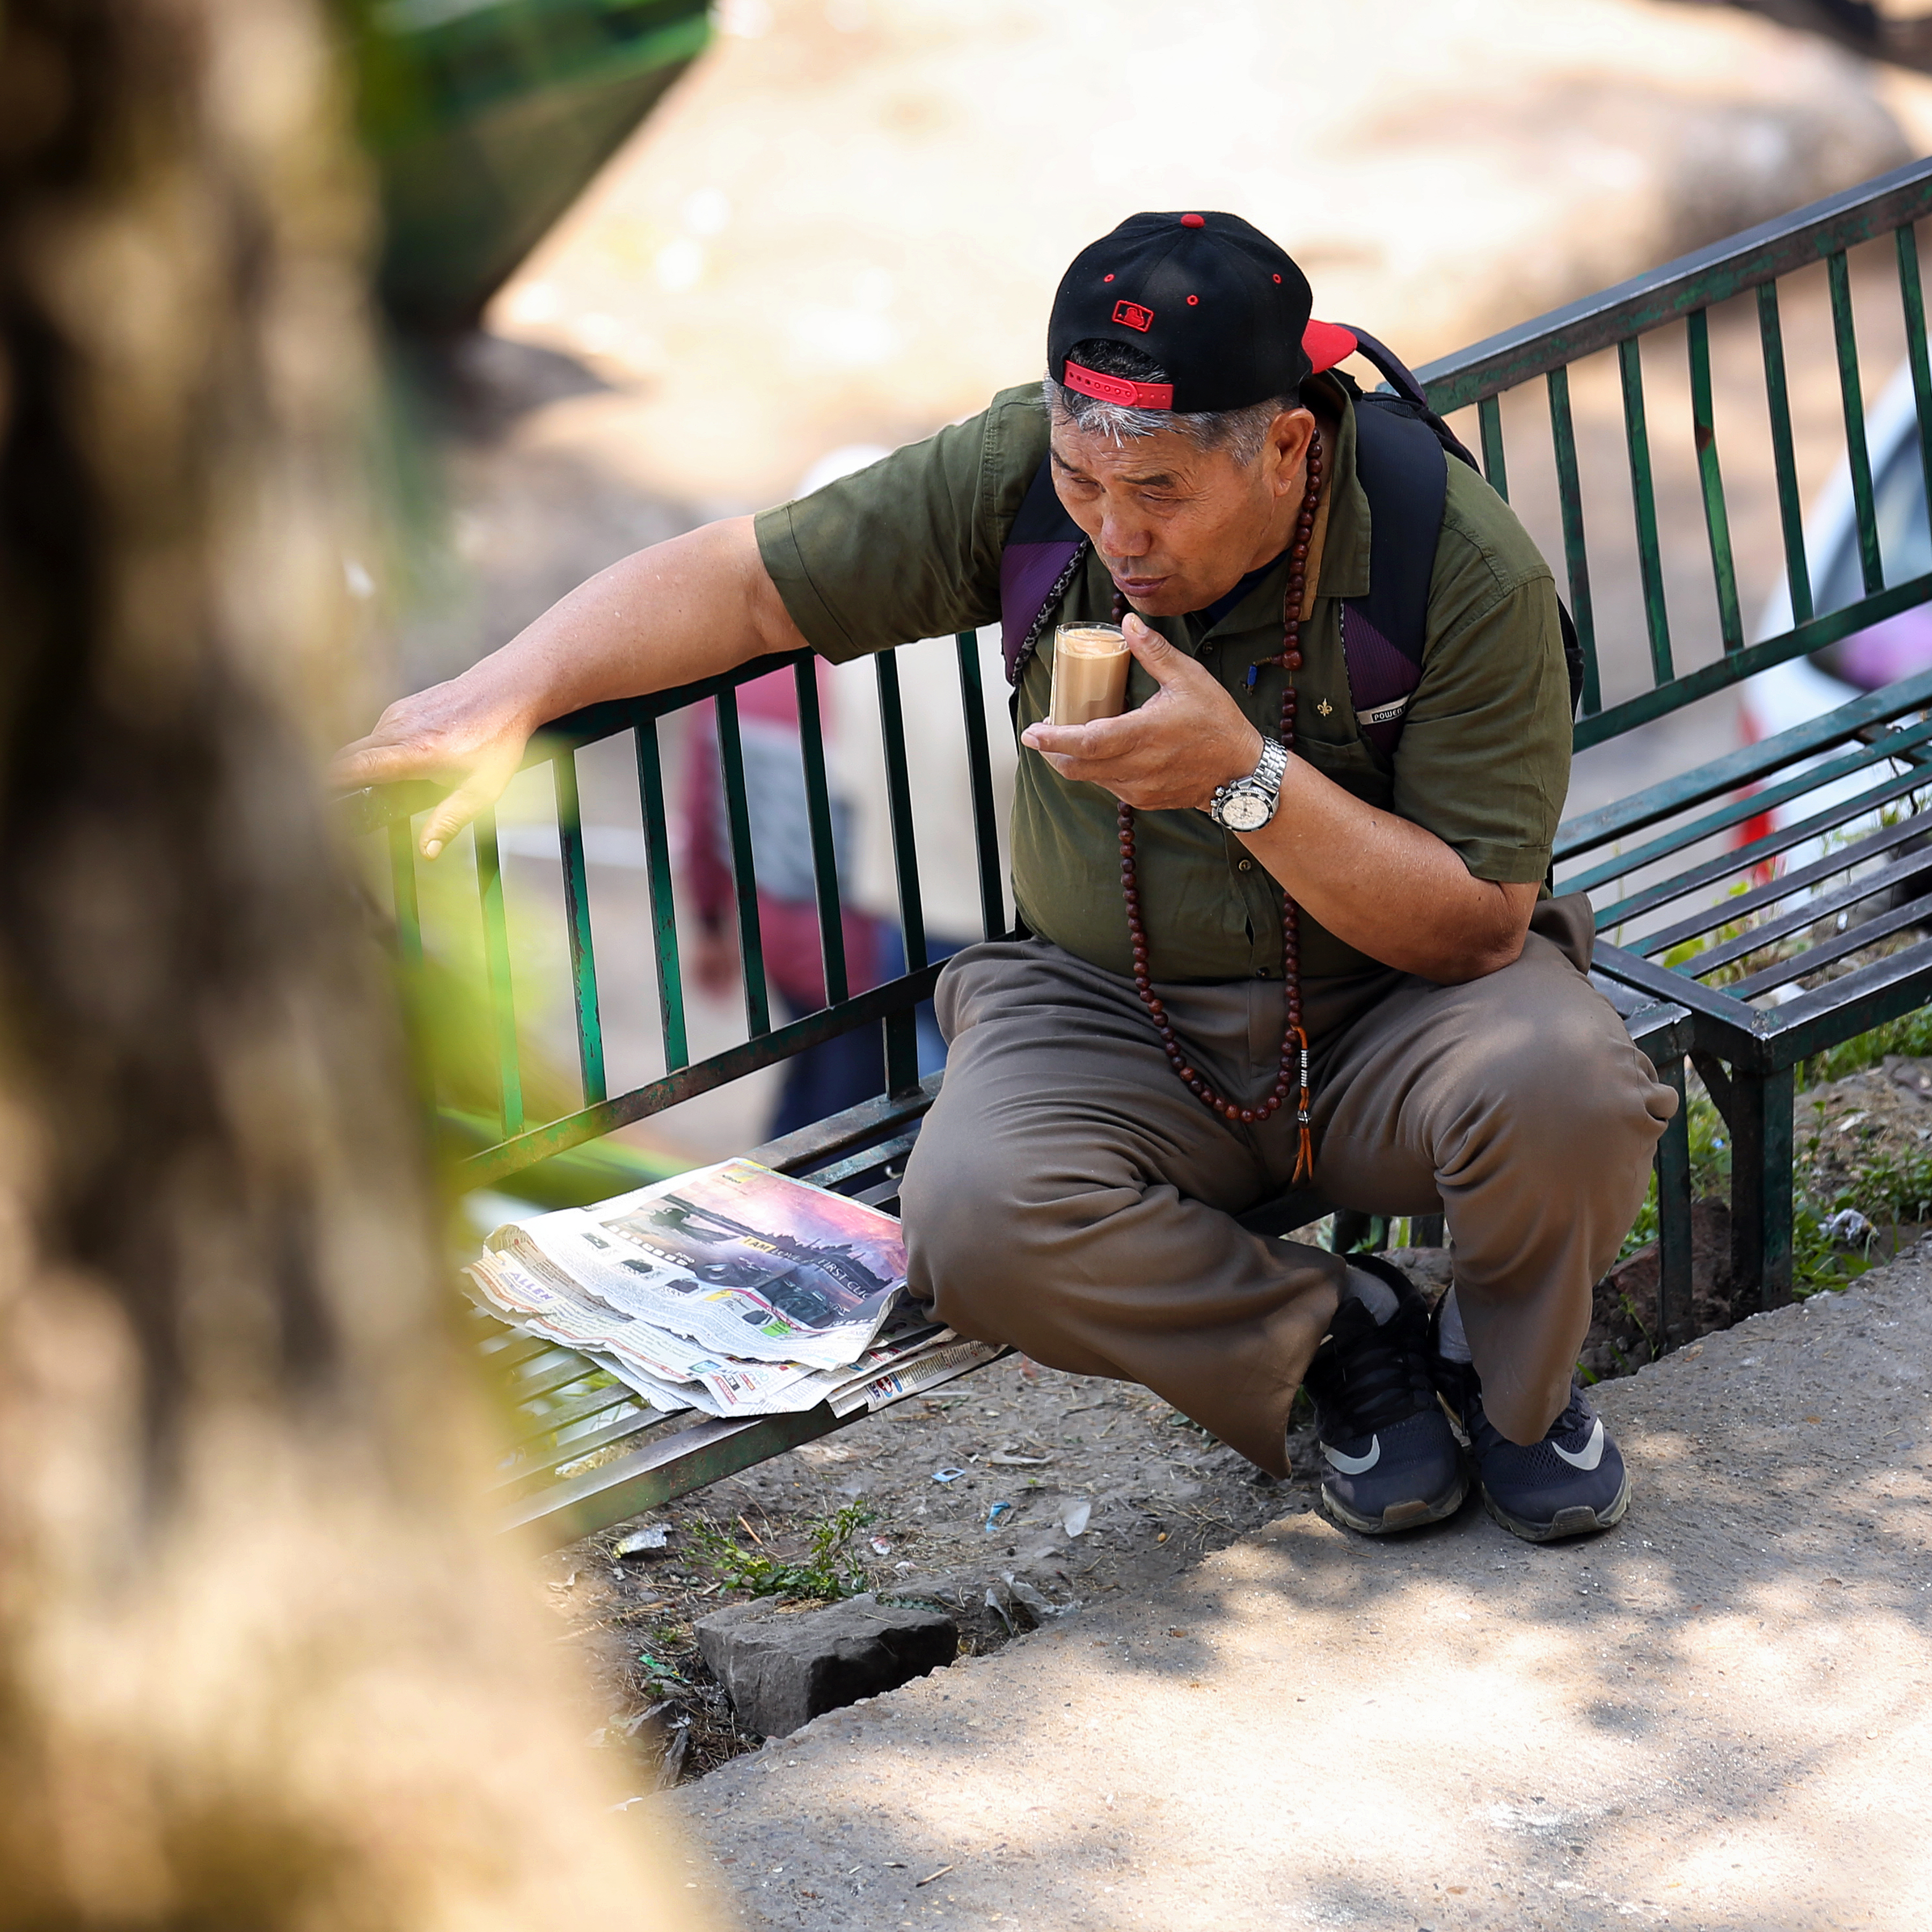 Man Sitting on Selective Focus Photography